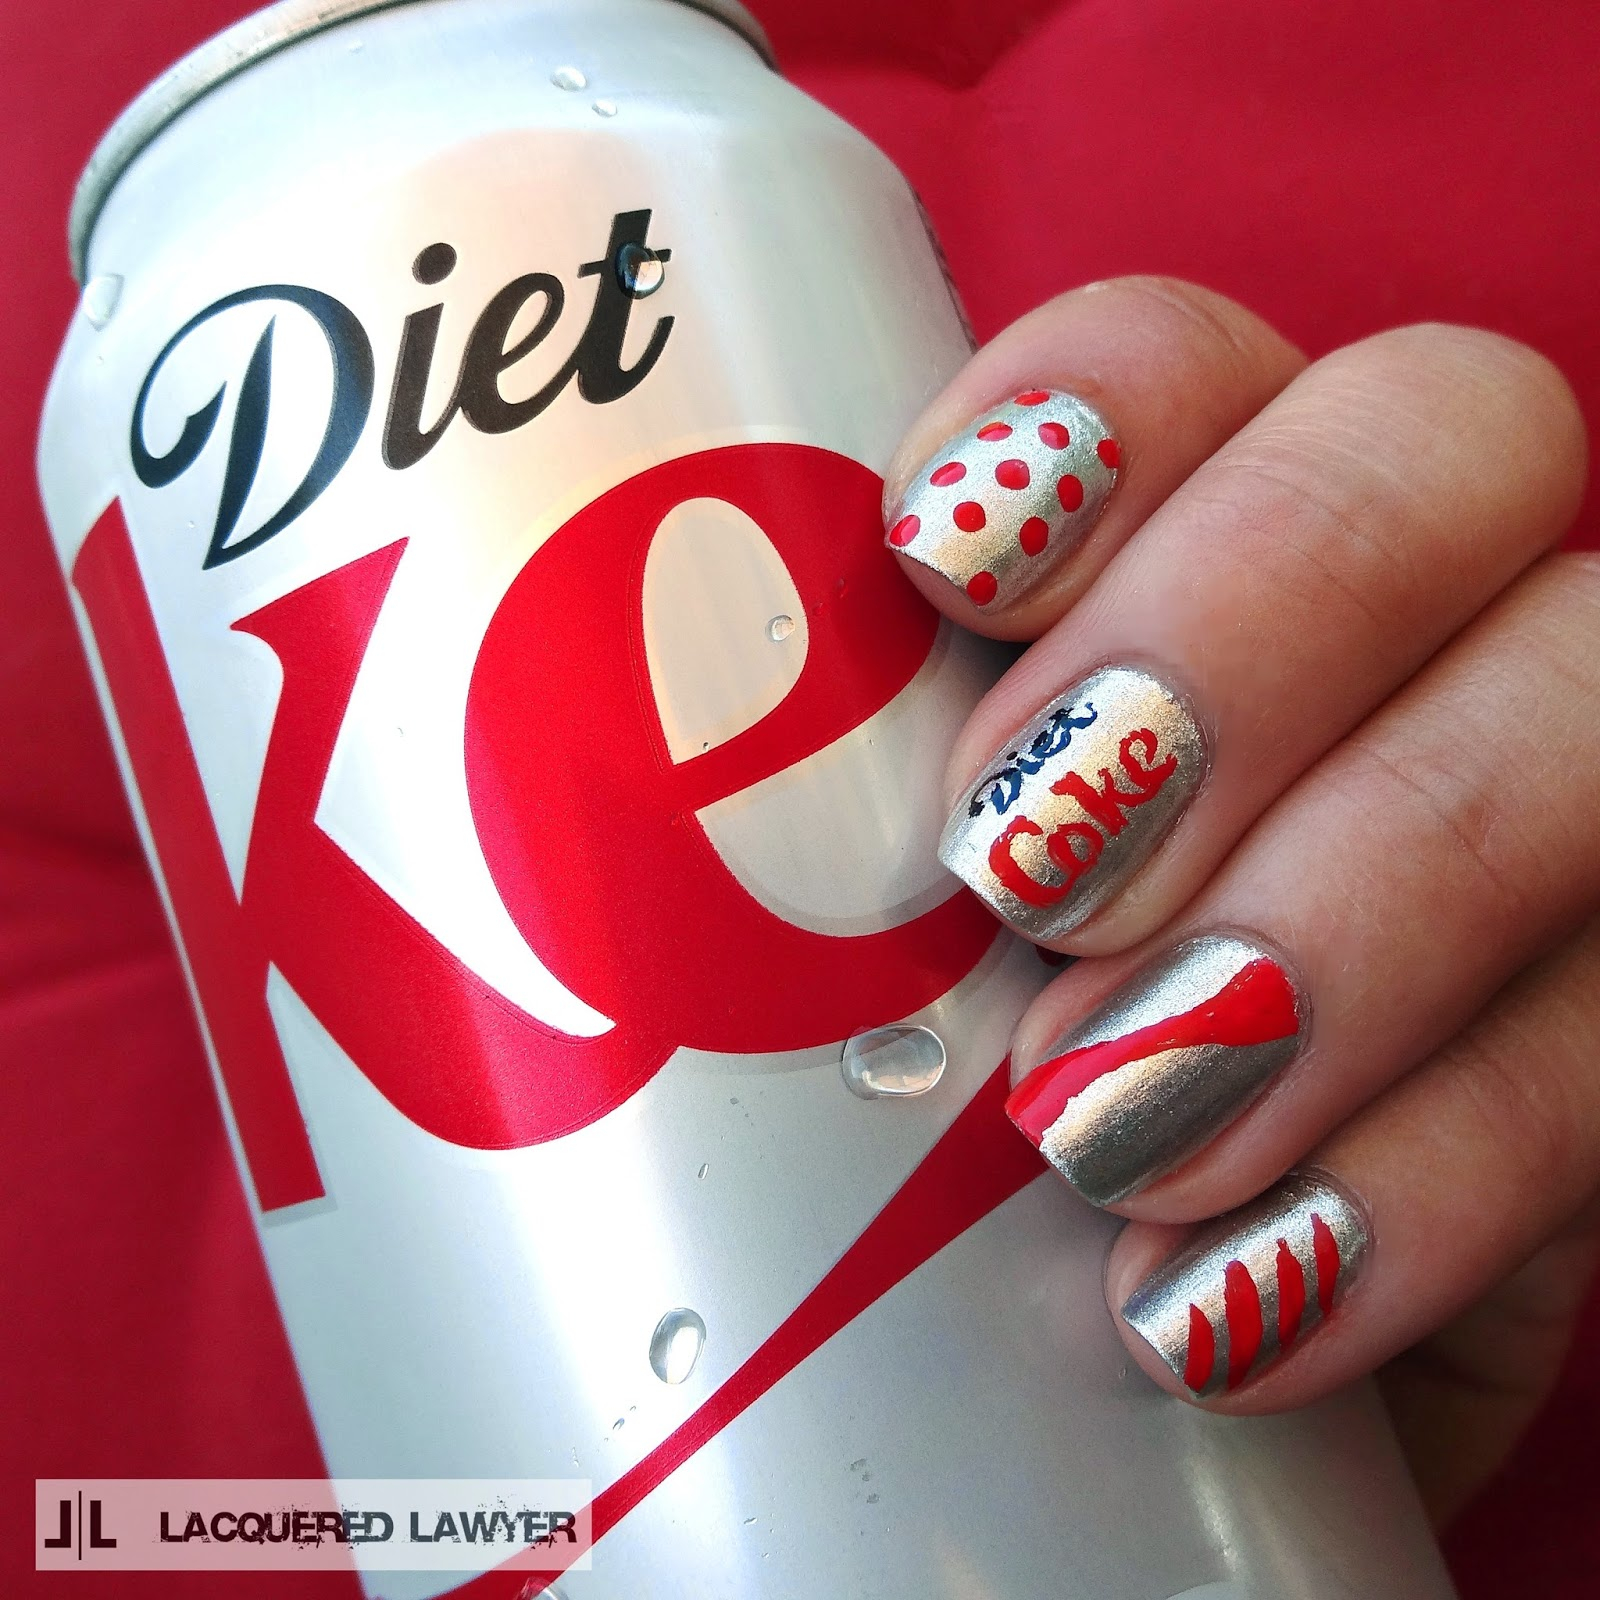 Diet Coke Nails